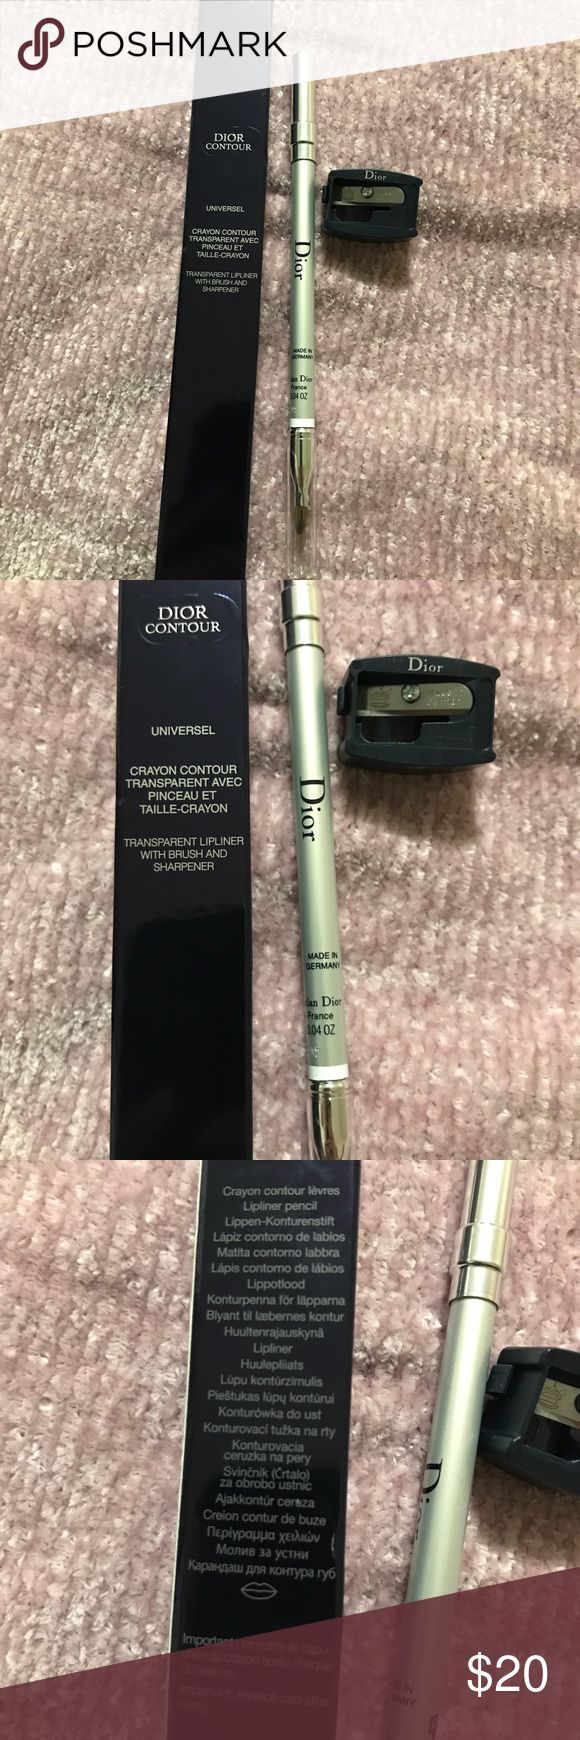 Dior contour Brand new, authentic Dior contour universal crayon with sharpener included Dior Makeup